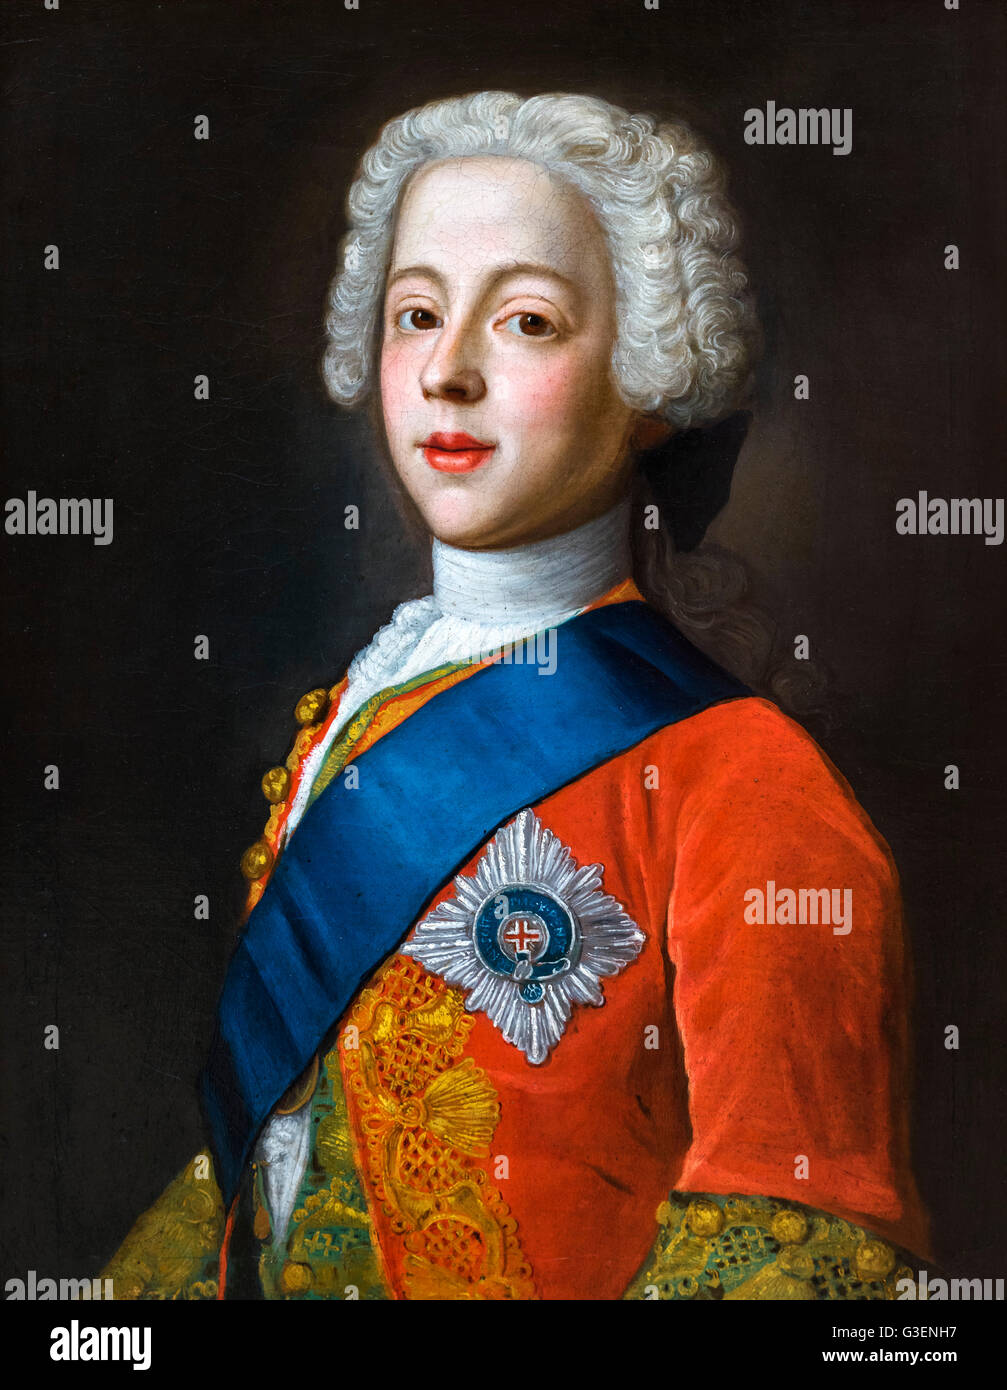 Bonnie Prince Charlie portrait. Prince Charles Edward Stuart (1720- 1788), commonly known as The Young Pretender - Stock Image